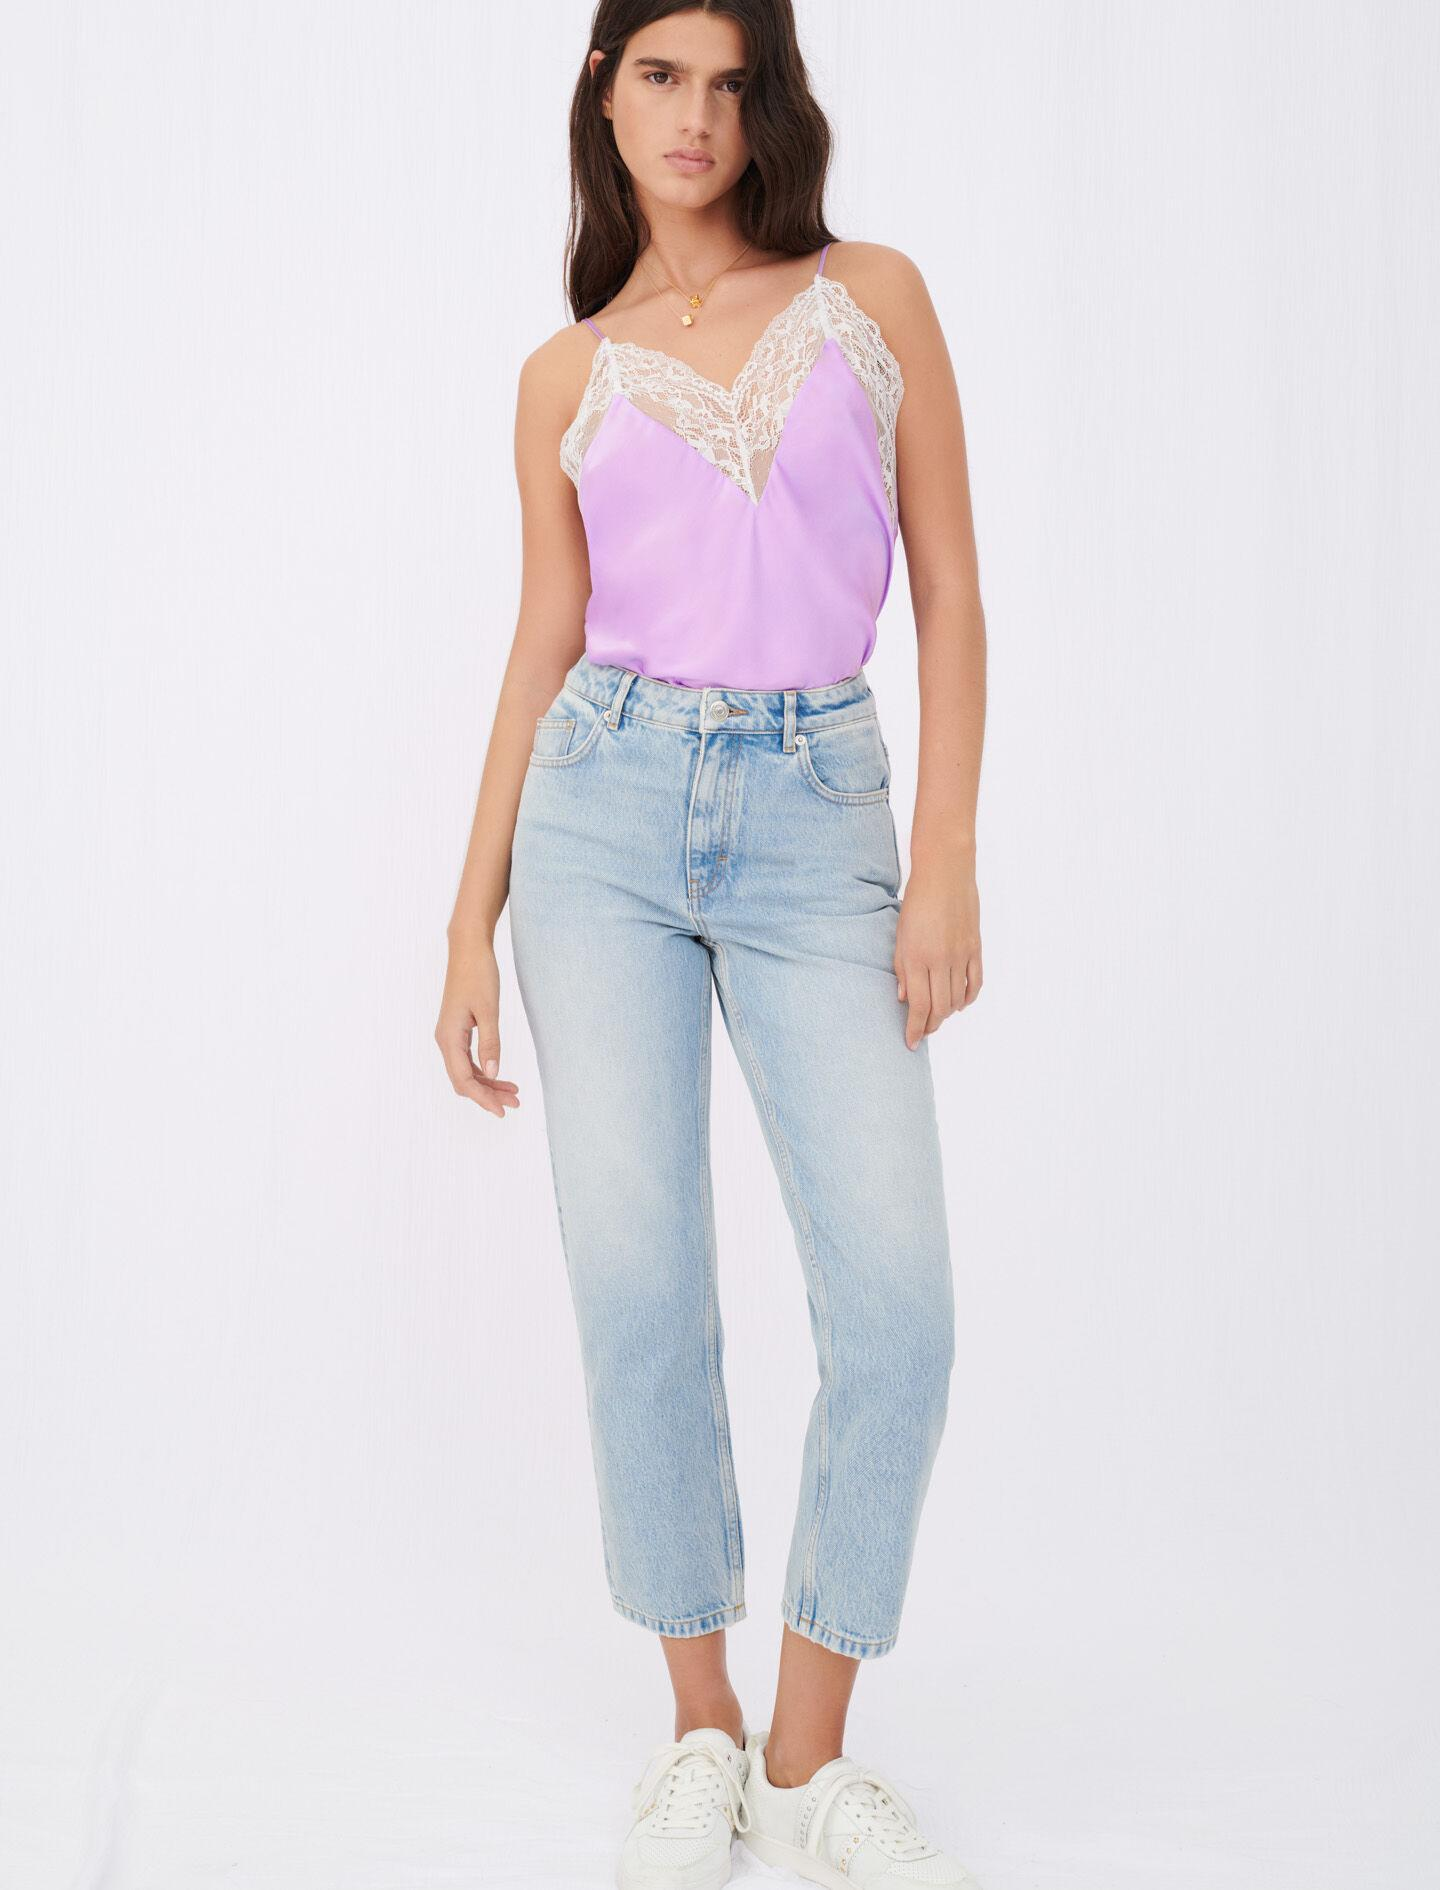 SILK SATIN AND LACE TOP 1